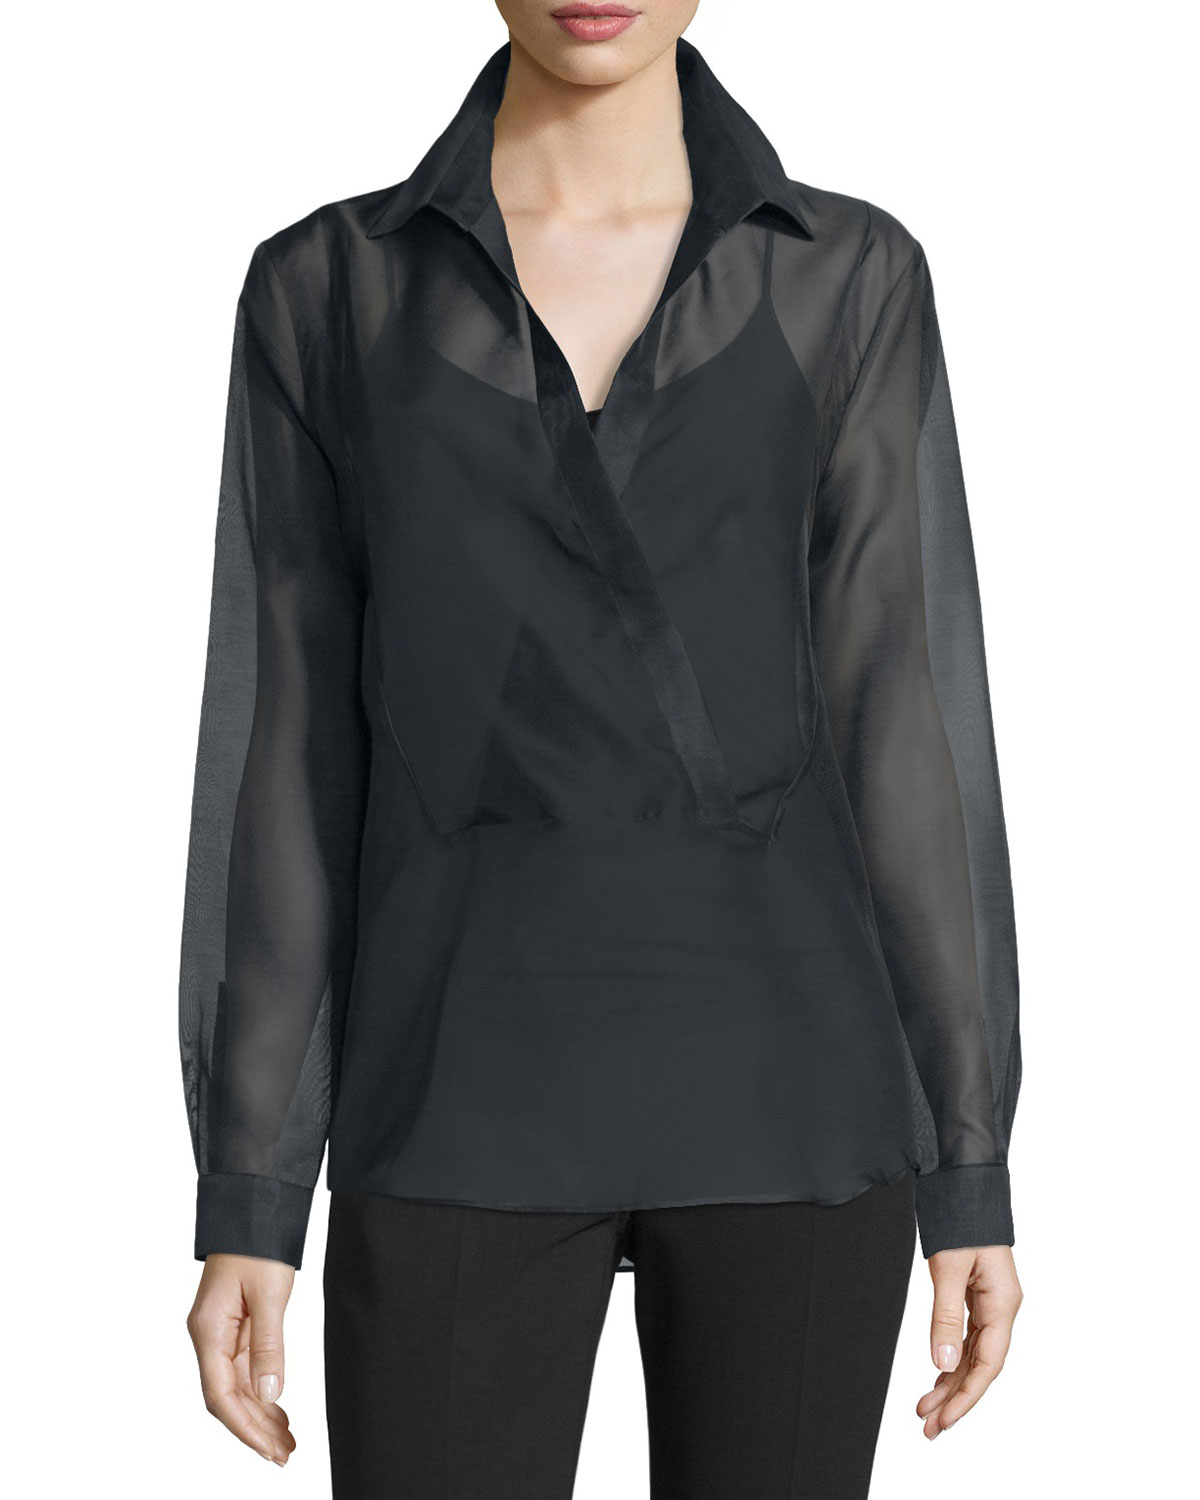 Long-Sleeve Wrap Blouse, Black